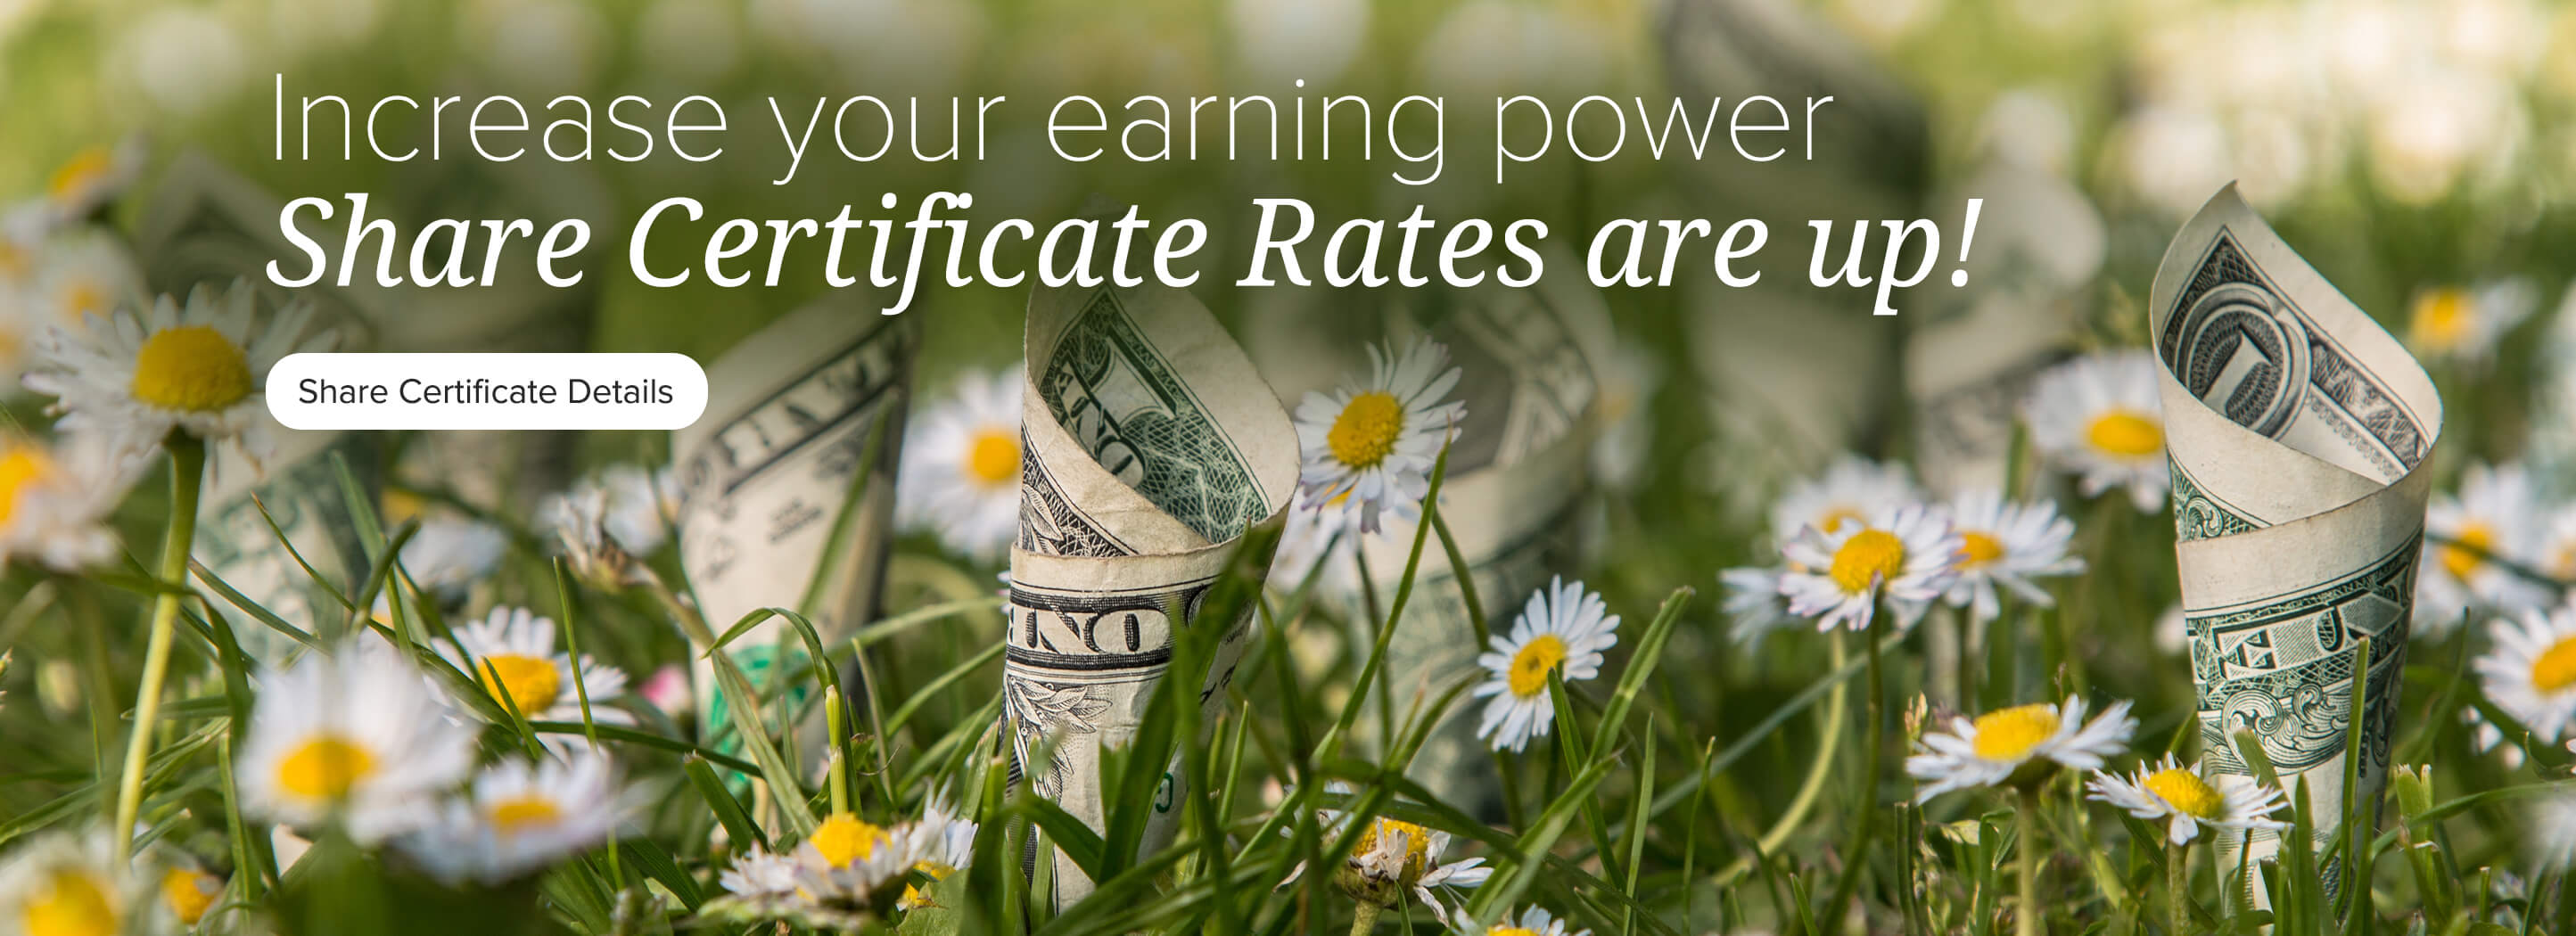 Increase your earning power. Share Certificate Rates are up! Share Certificate Details.